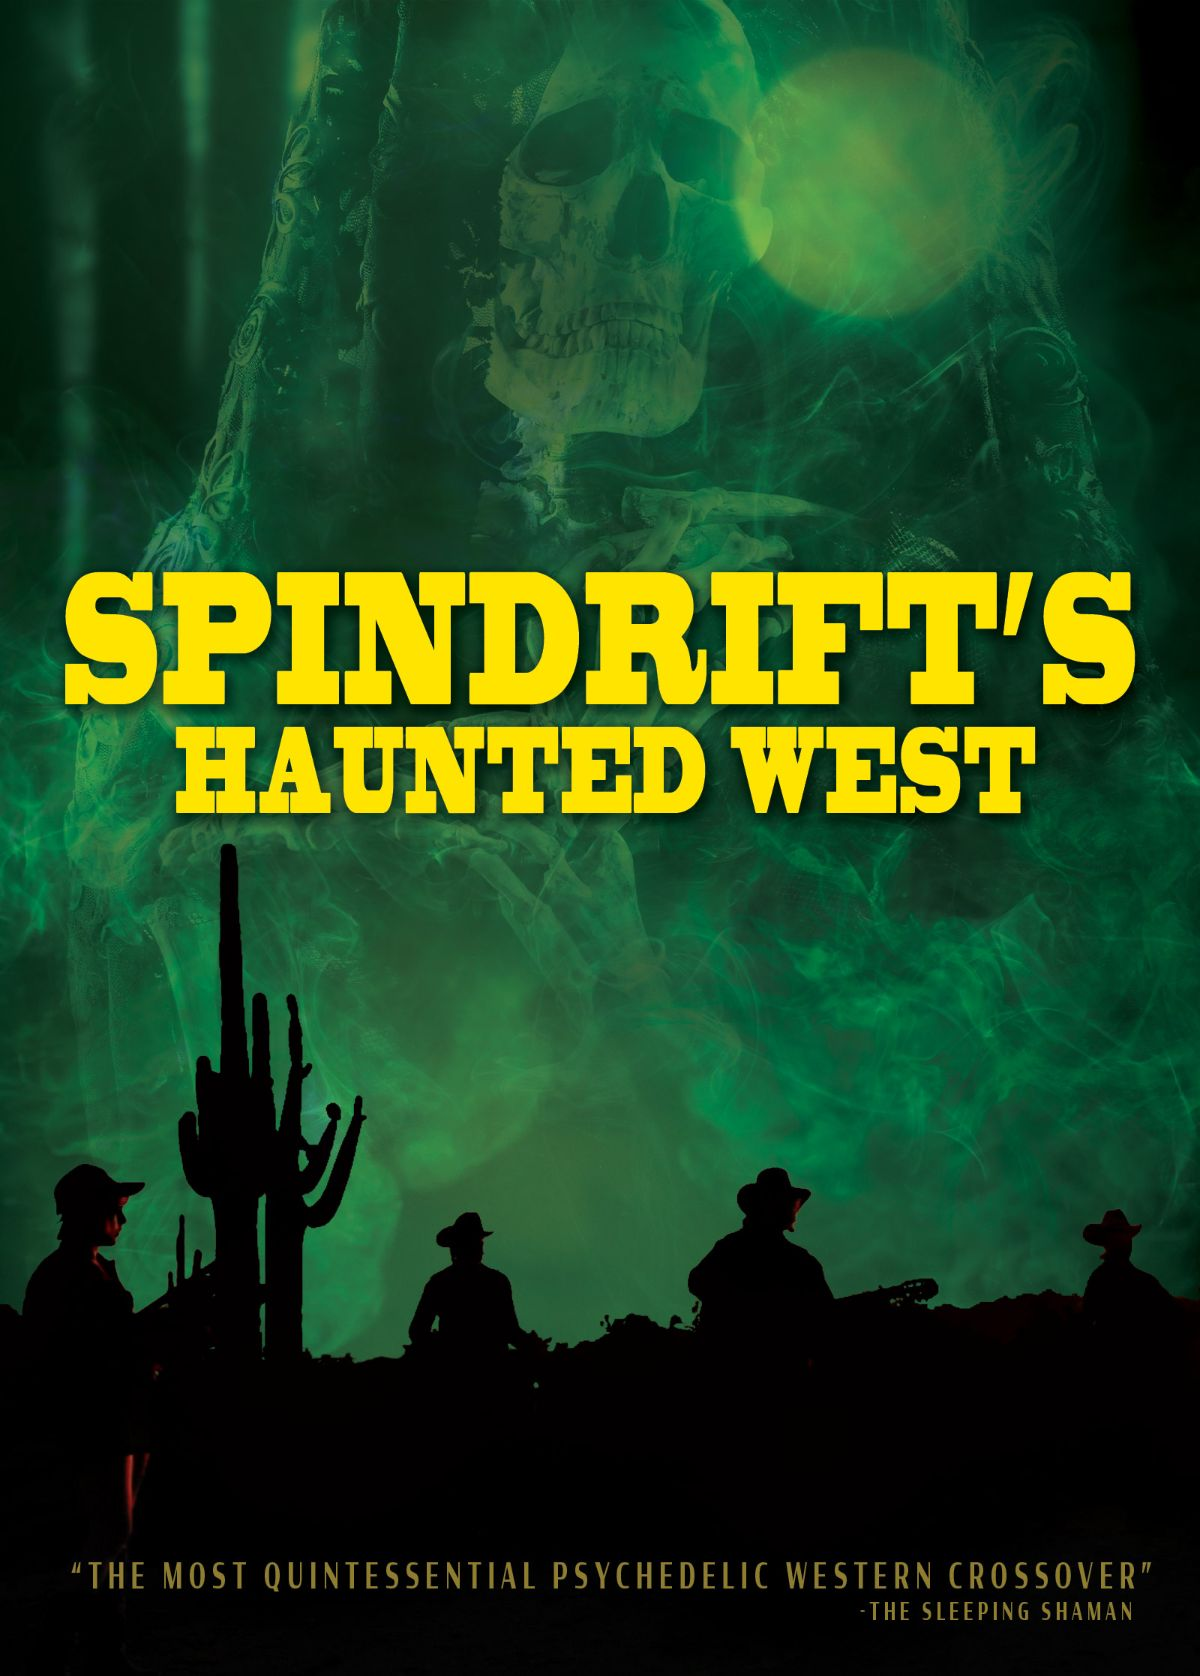 Psychedelic Rock Band Spindrift Performs at America's Most Haunted Locations in SPINDRIFT'S HAUNTED WEST